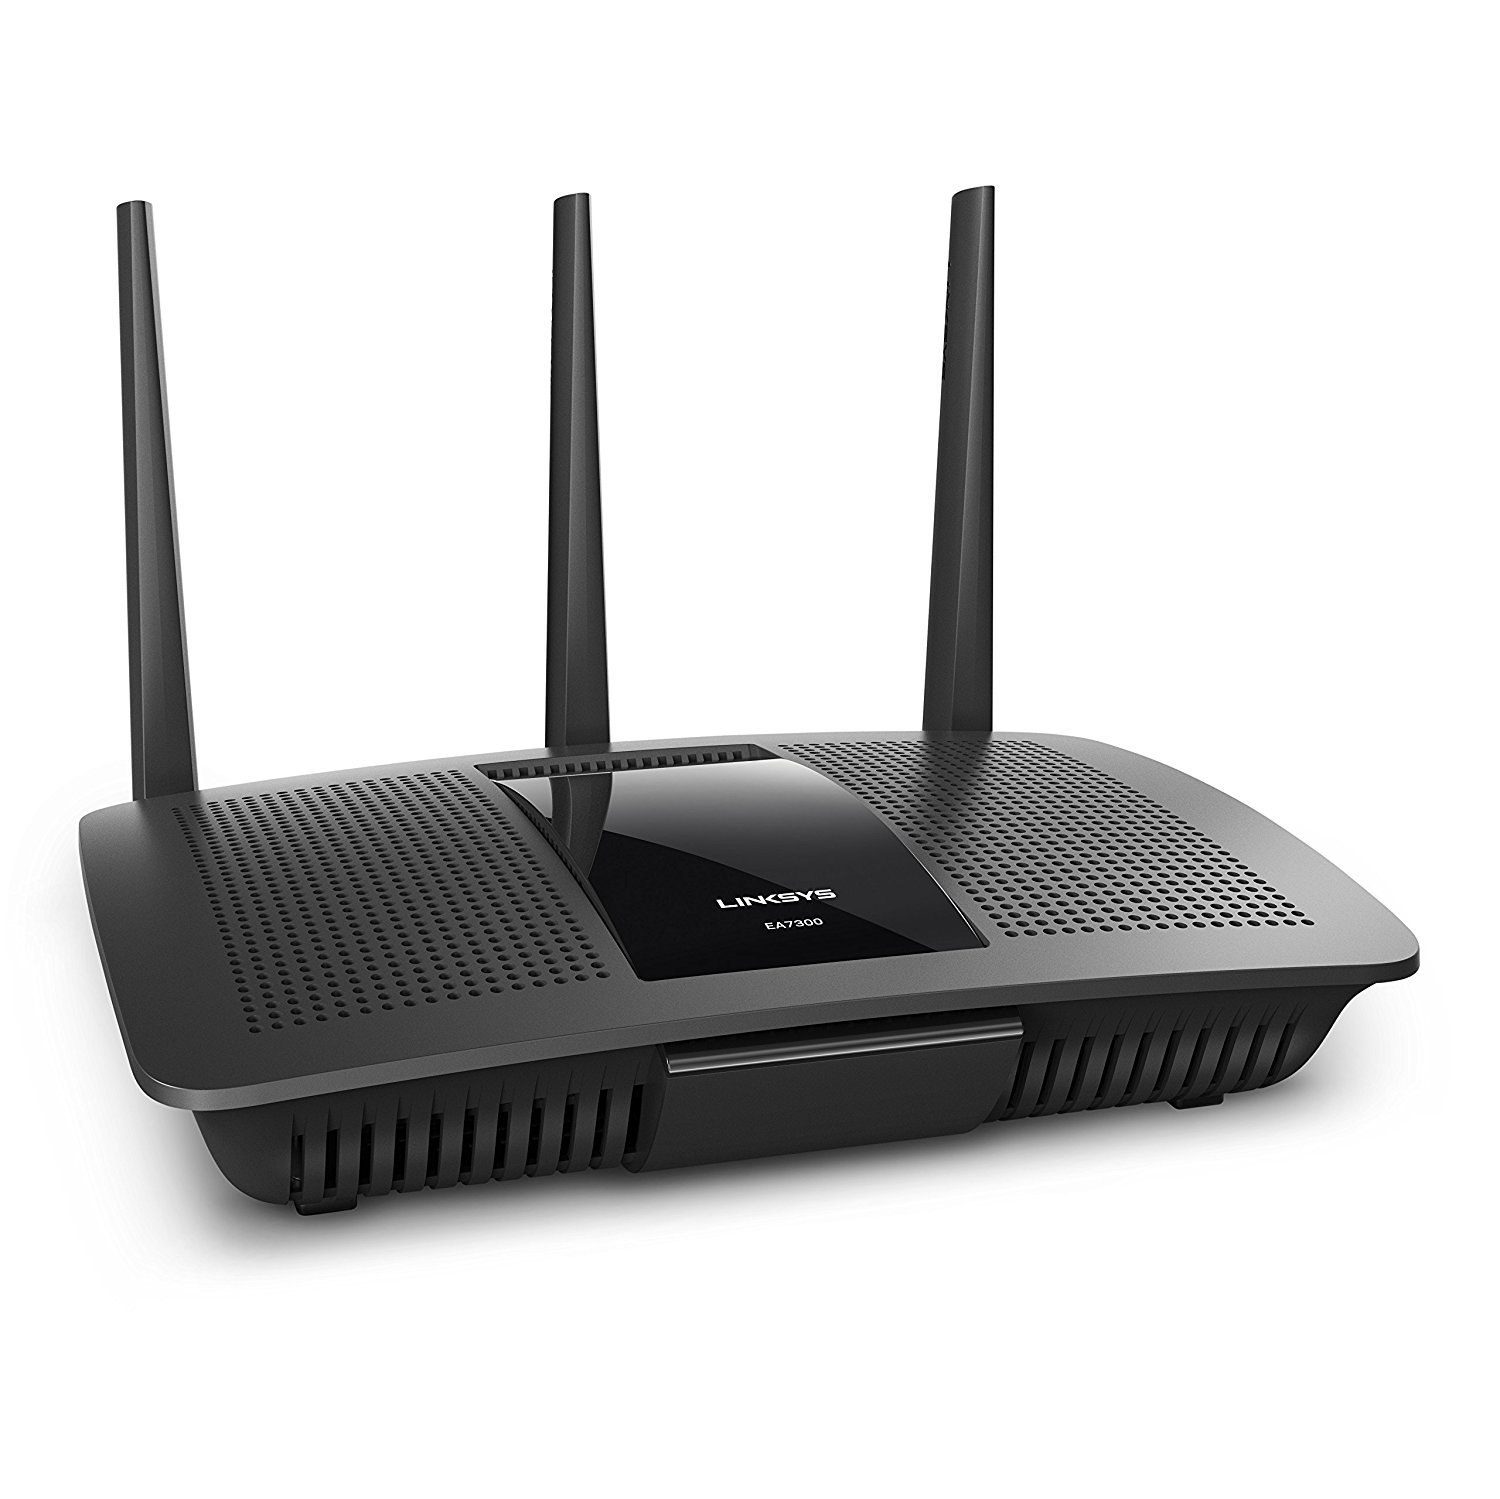 Linksys AC1750 Dual-Band Smart Wireless Router with MU-MIMO, Works with Amazon Alexa (Max Stream EA7300) (Certified Refurbished) by Linksys